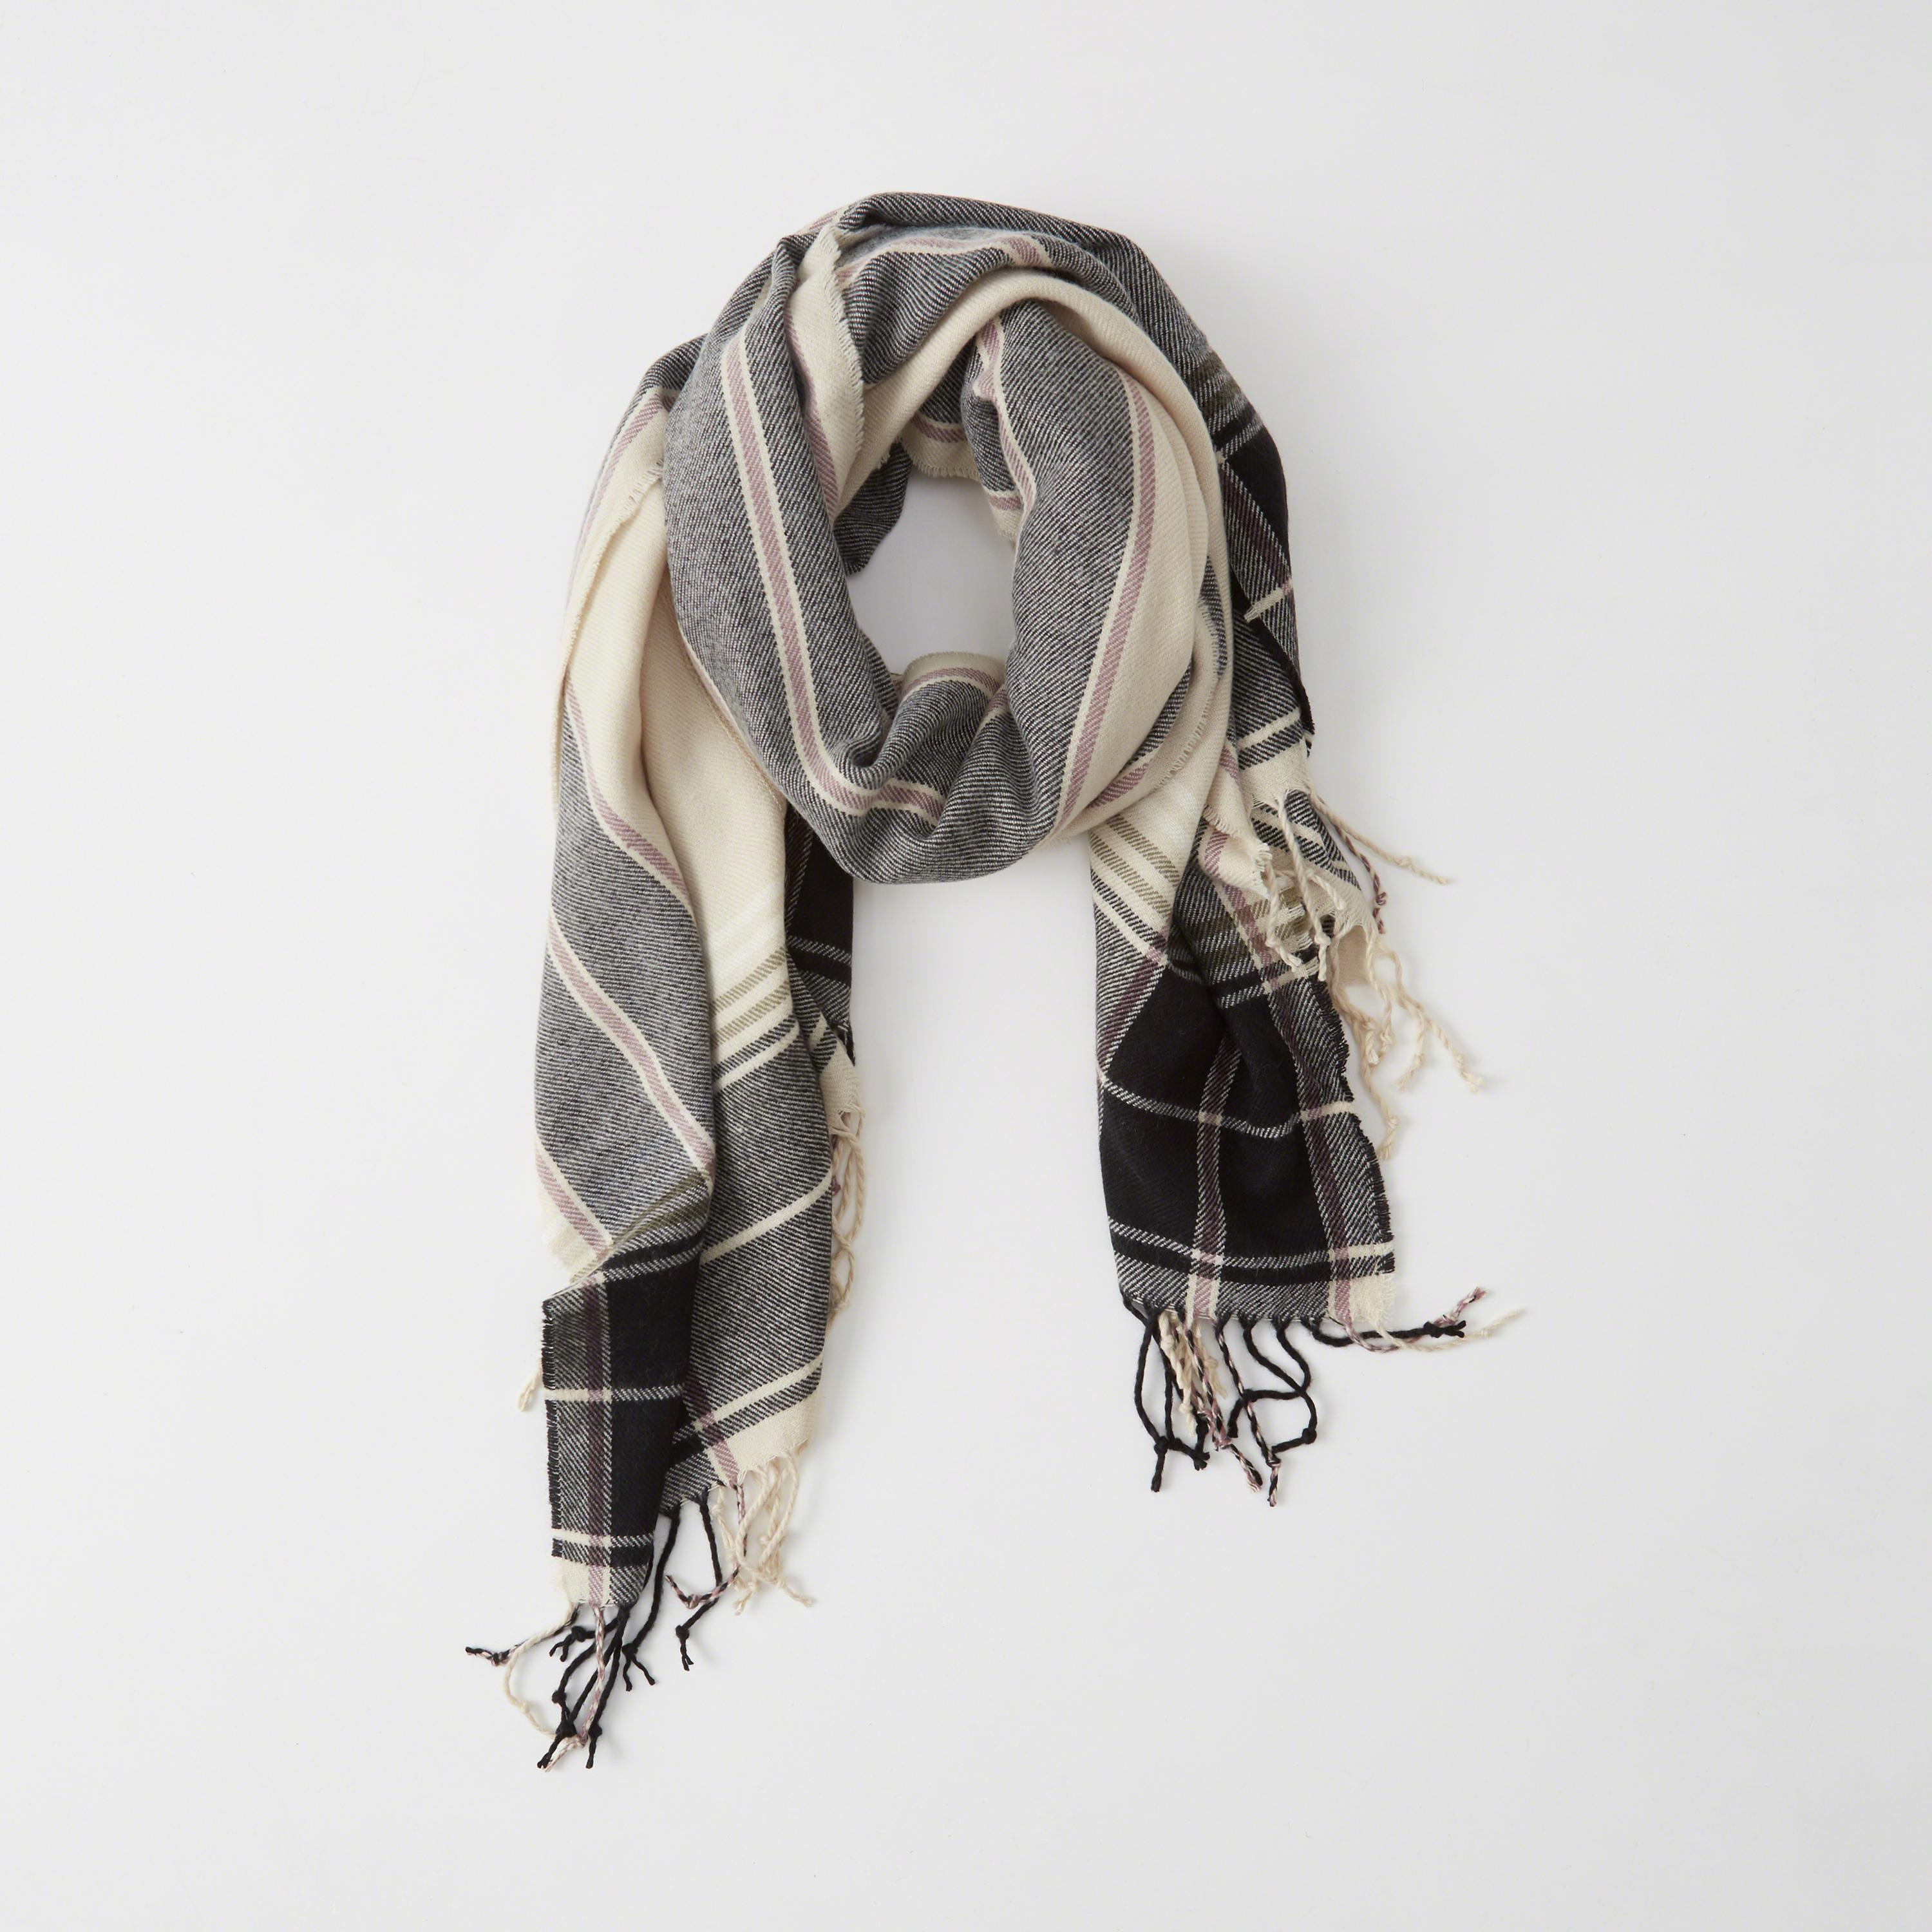 Abercrombie Fitch Accessories Abercrombie Fitch Womens: Abercrombie & Fitch Poncho Scarf